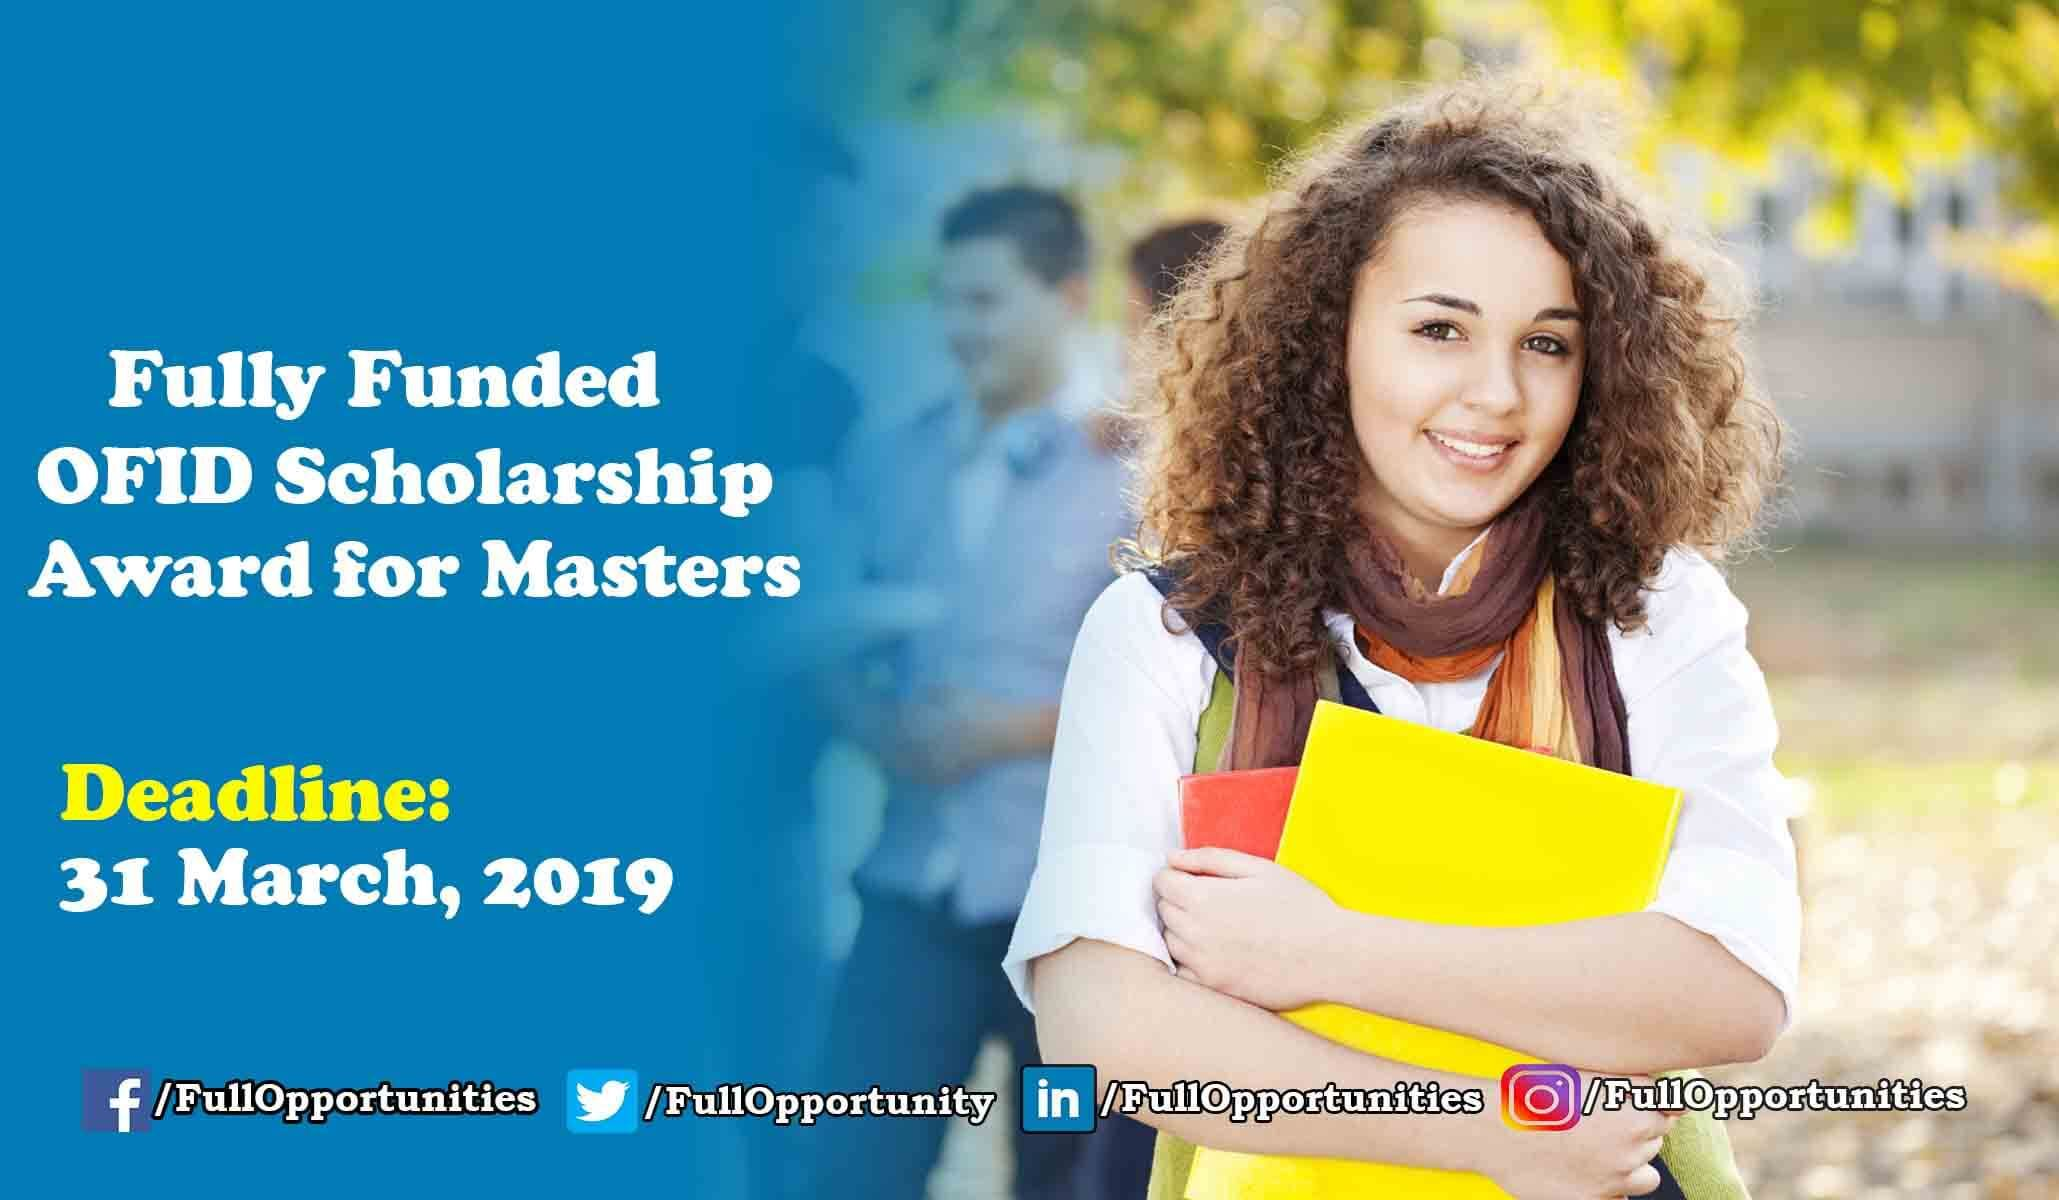 Ofid Scholarship Award For Masters 2020 Updated With Images